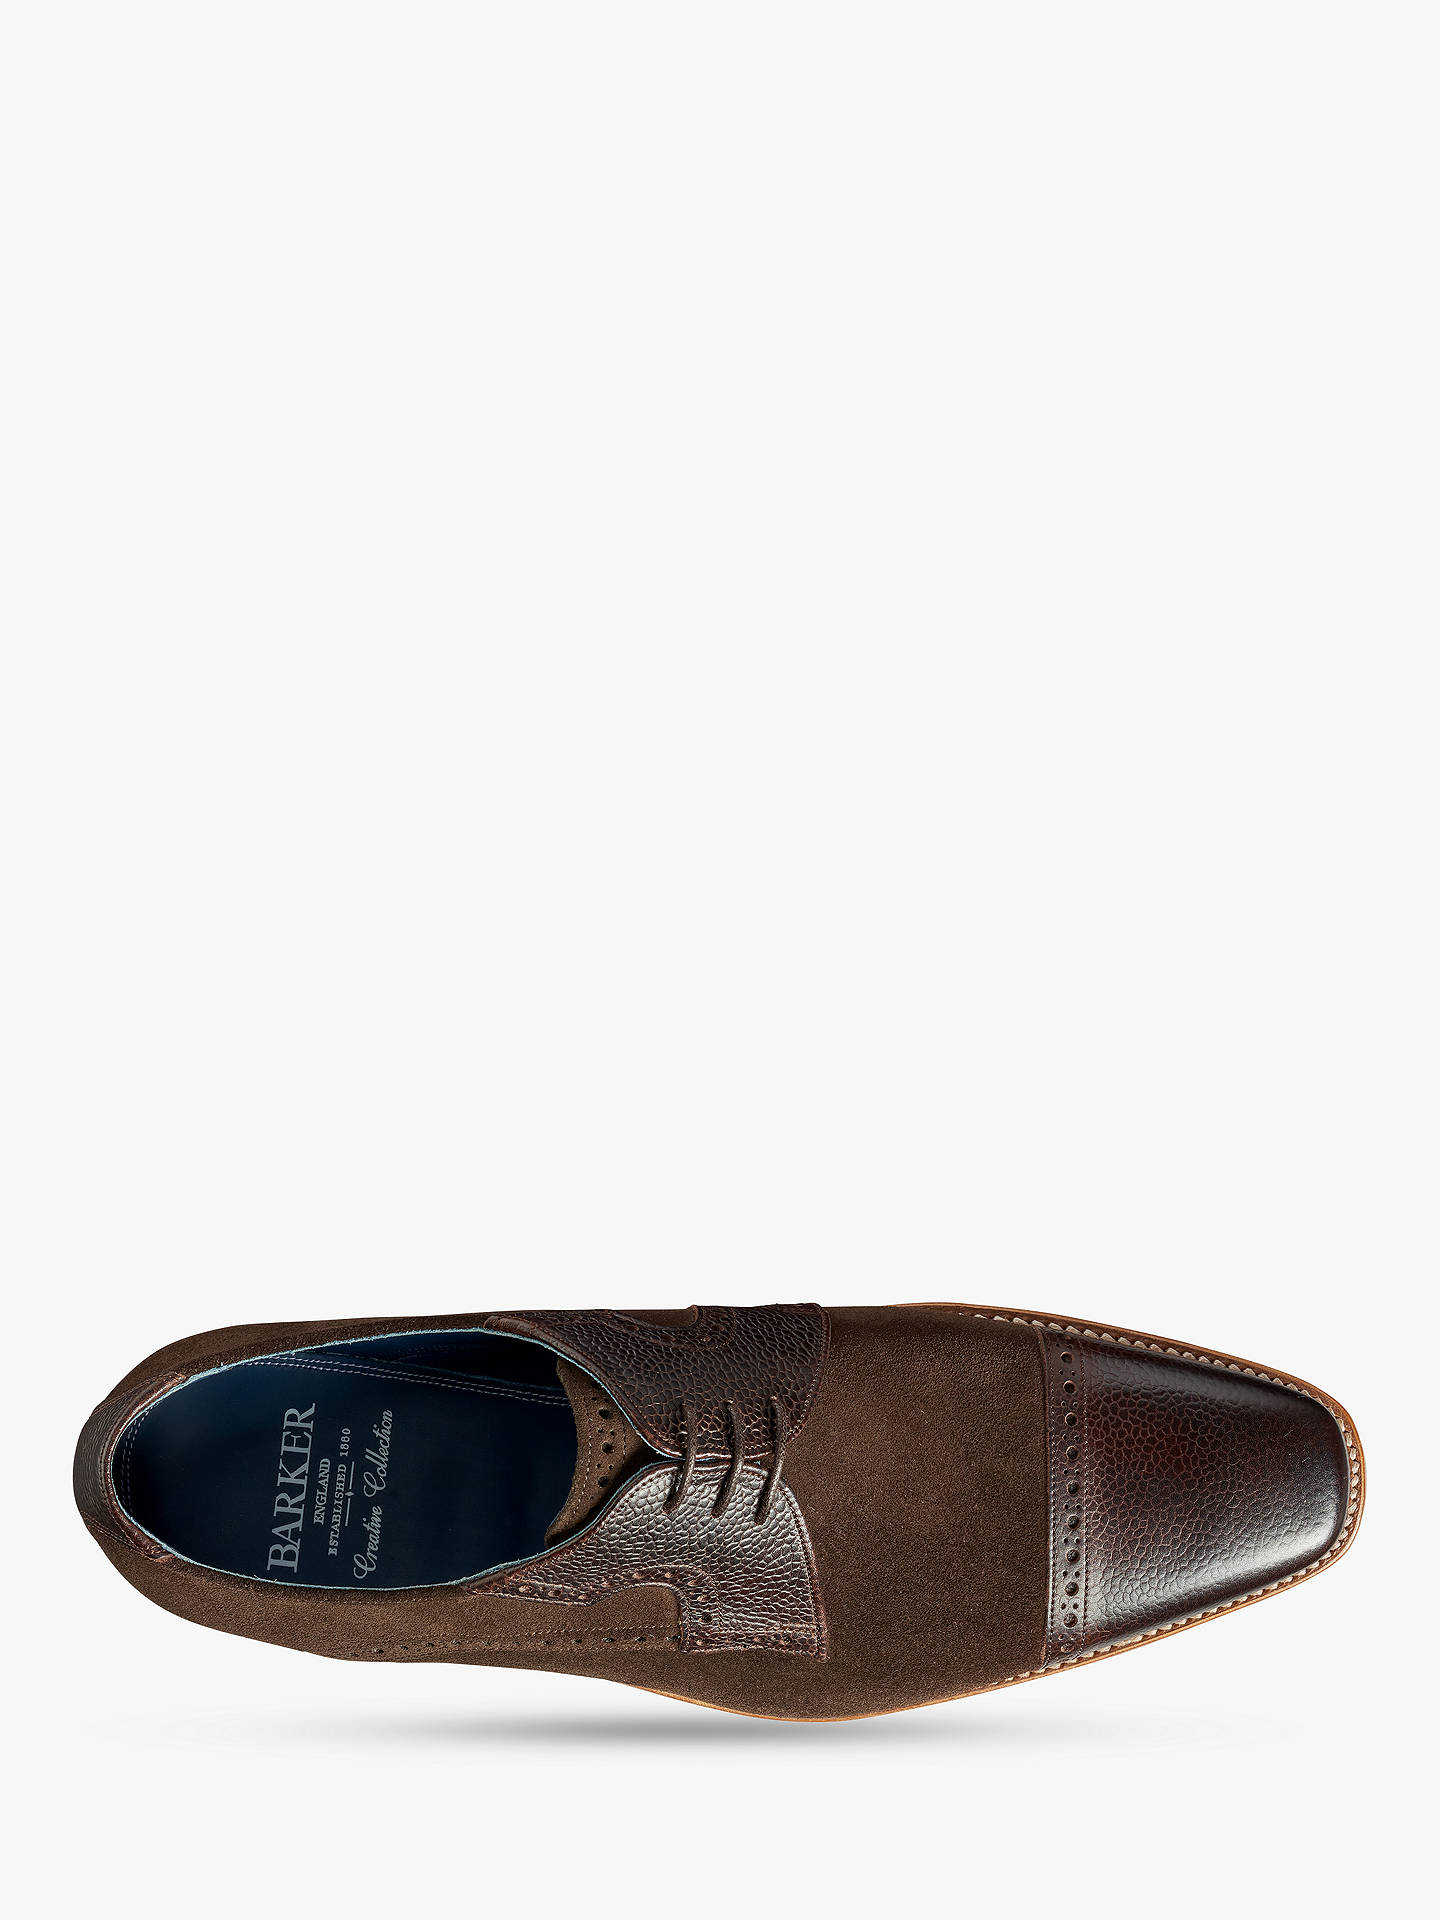 BuyBarker Ashton Leather and Suede Brogue Shoes, Brown, 8 Online at johnlewis.com